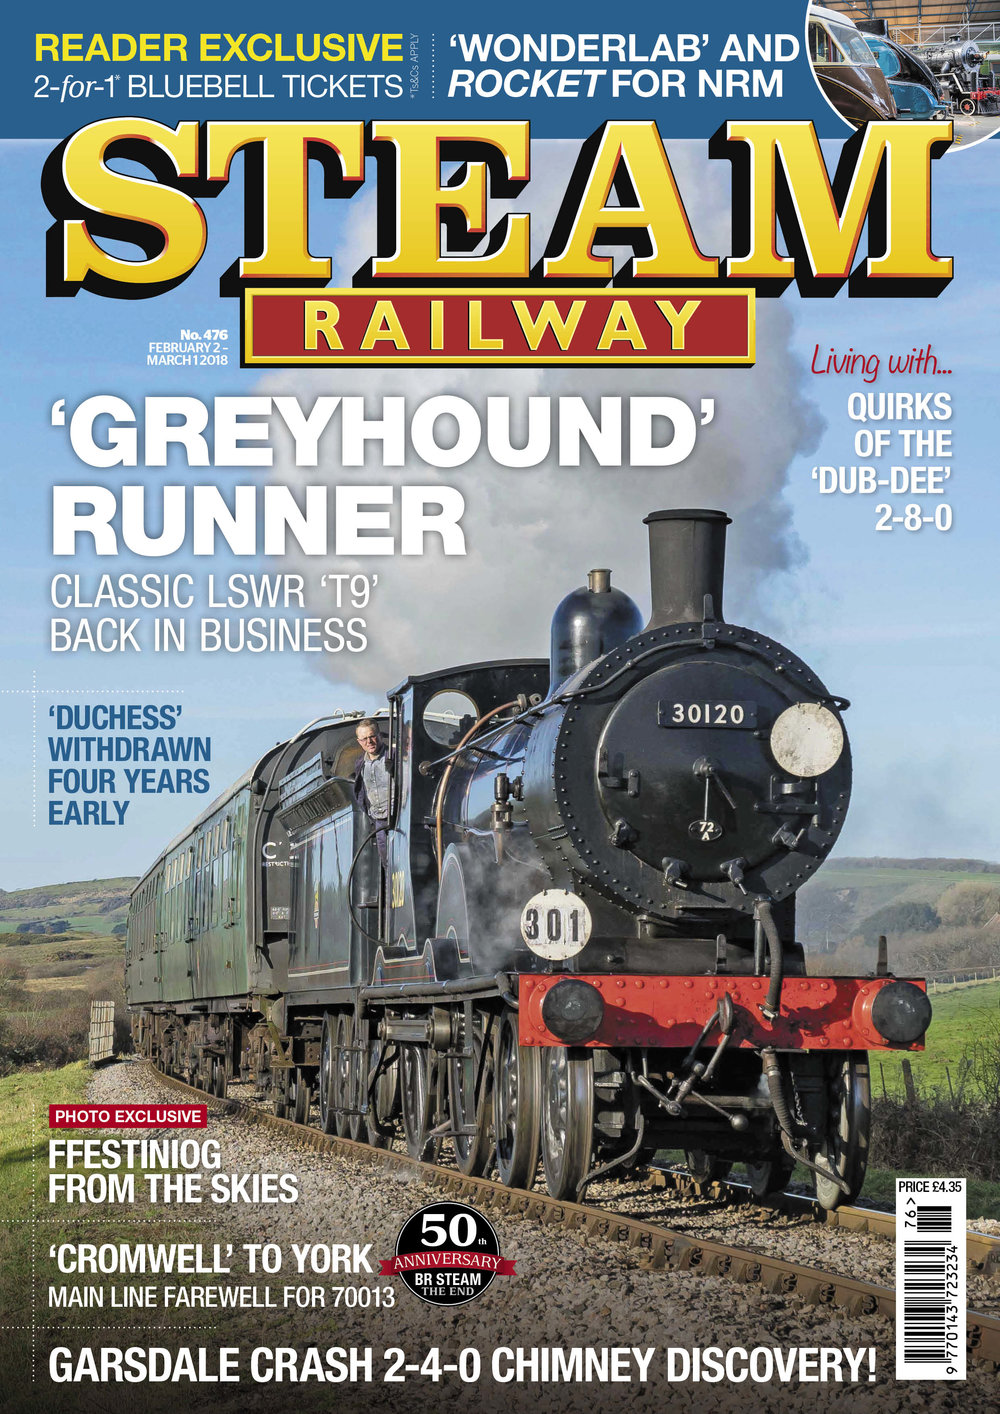 Steam Railway SR476 - On Sale Now!